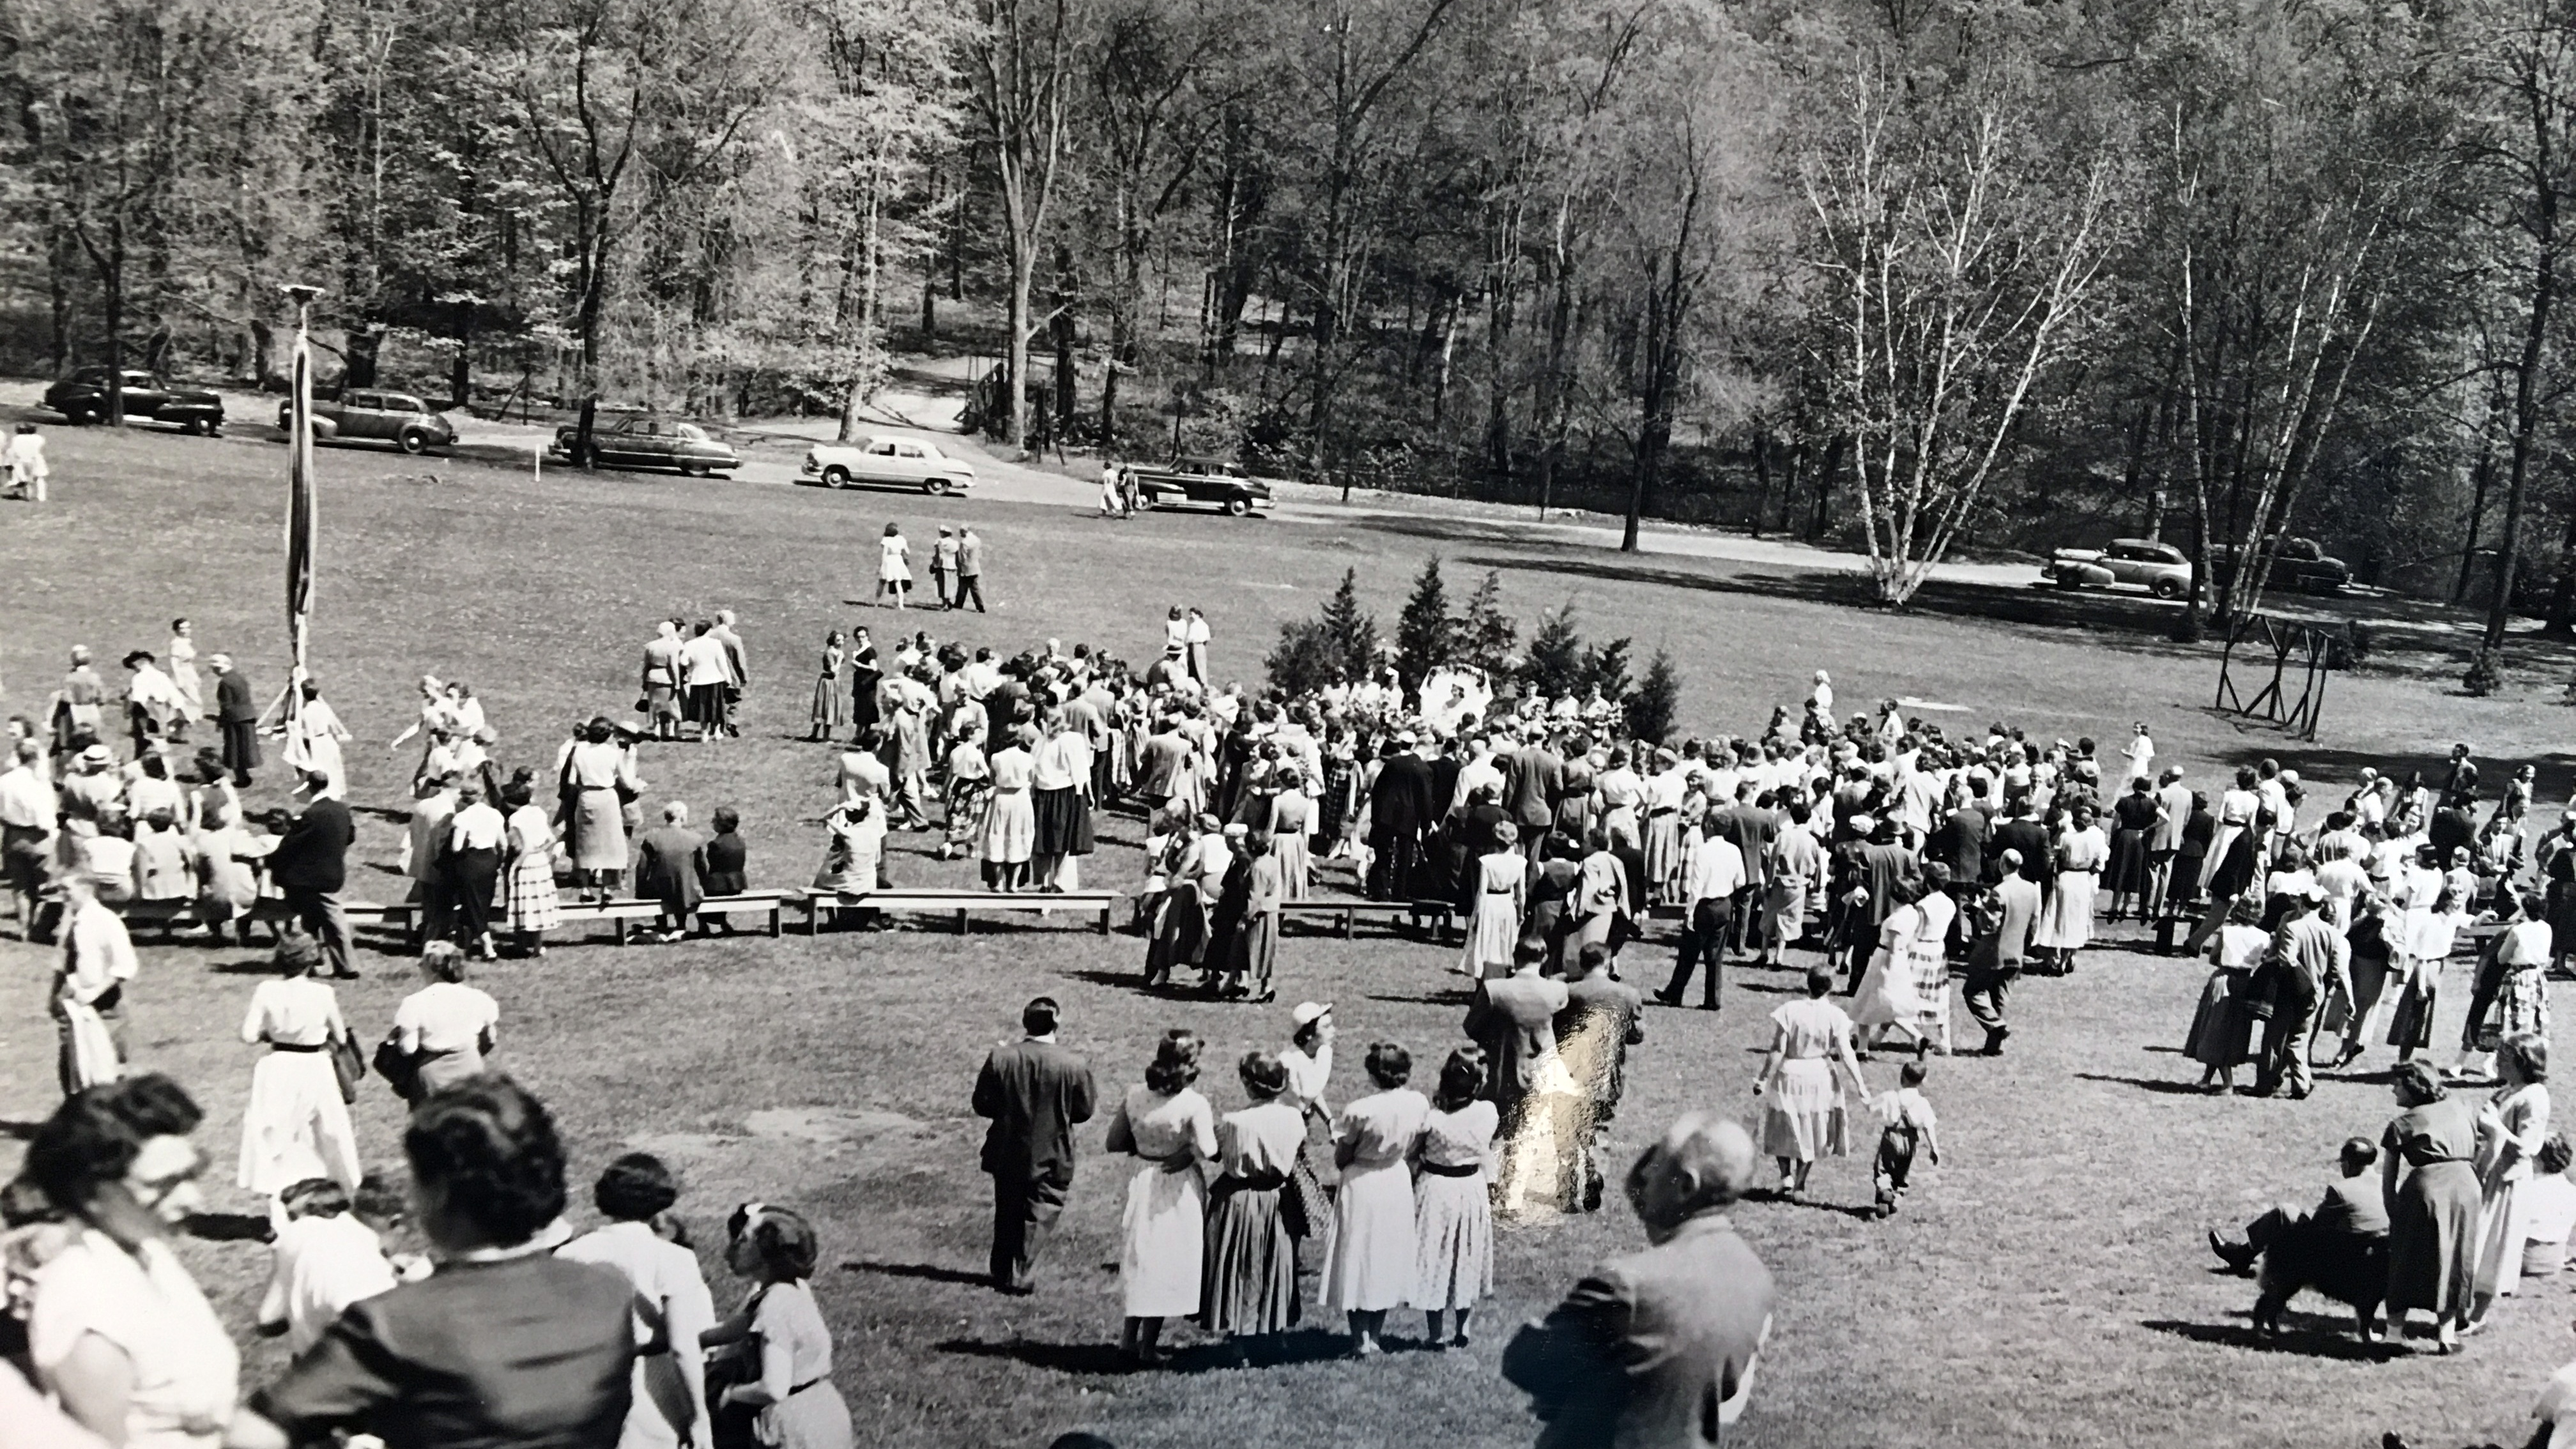 A 1950s May Day